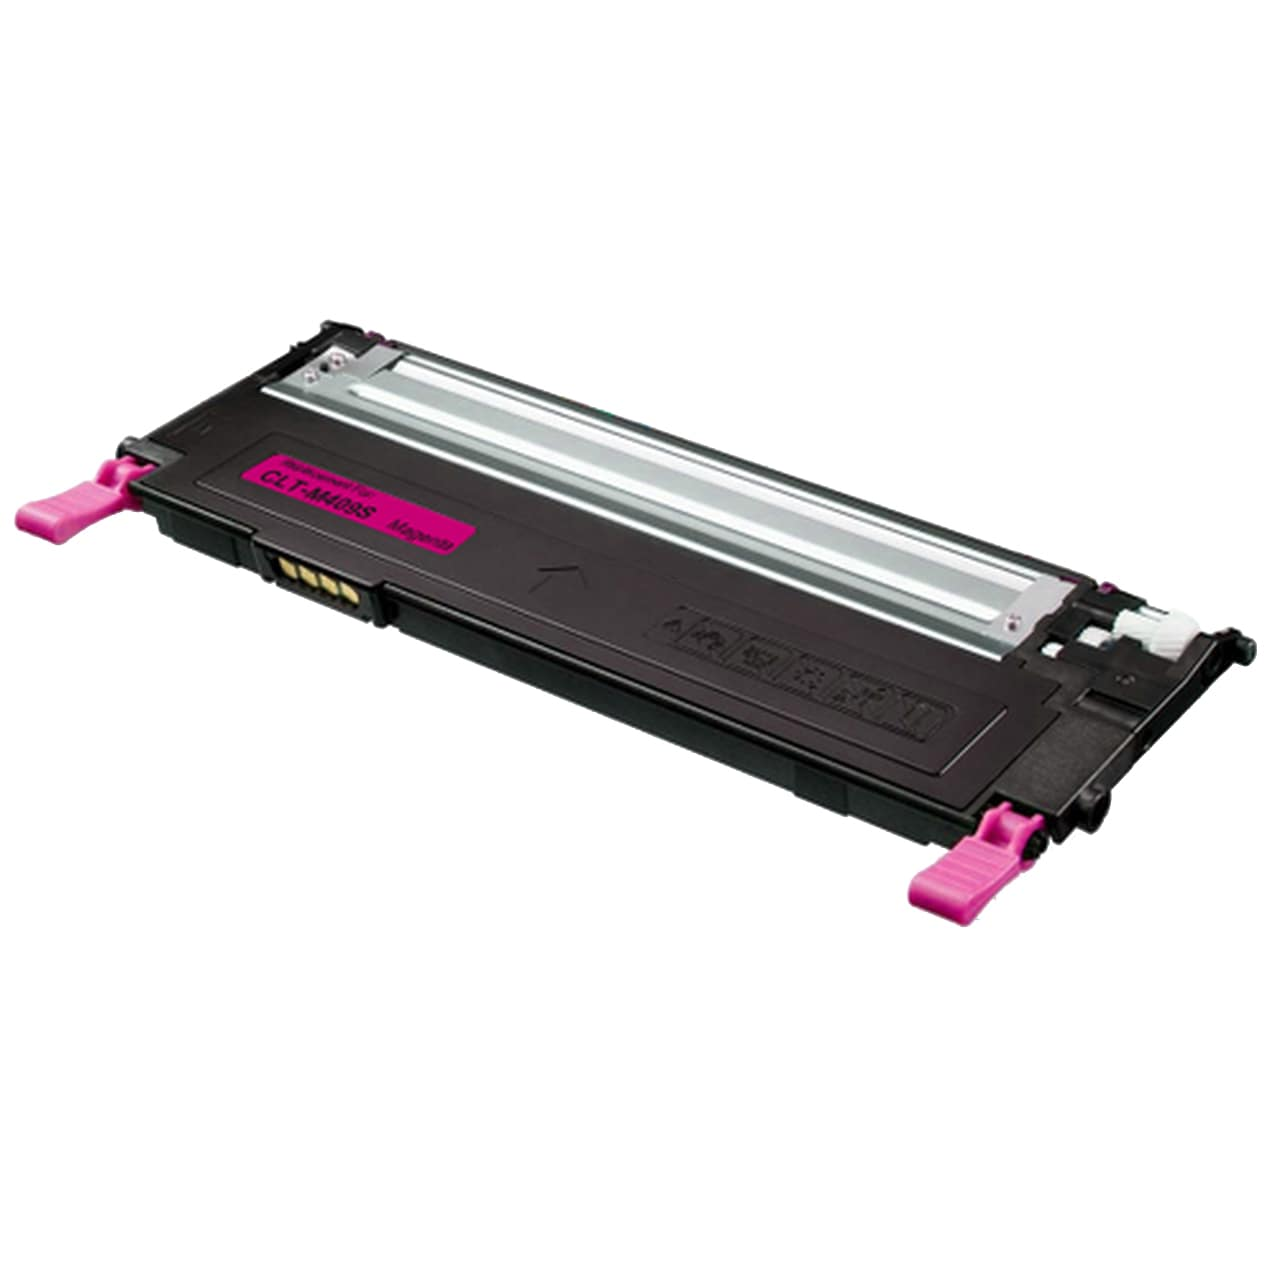 CLT-M409S Toner Cartridge - Samsung Remanufactured  (Magenta)